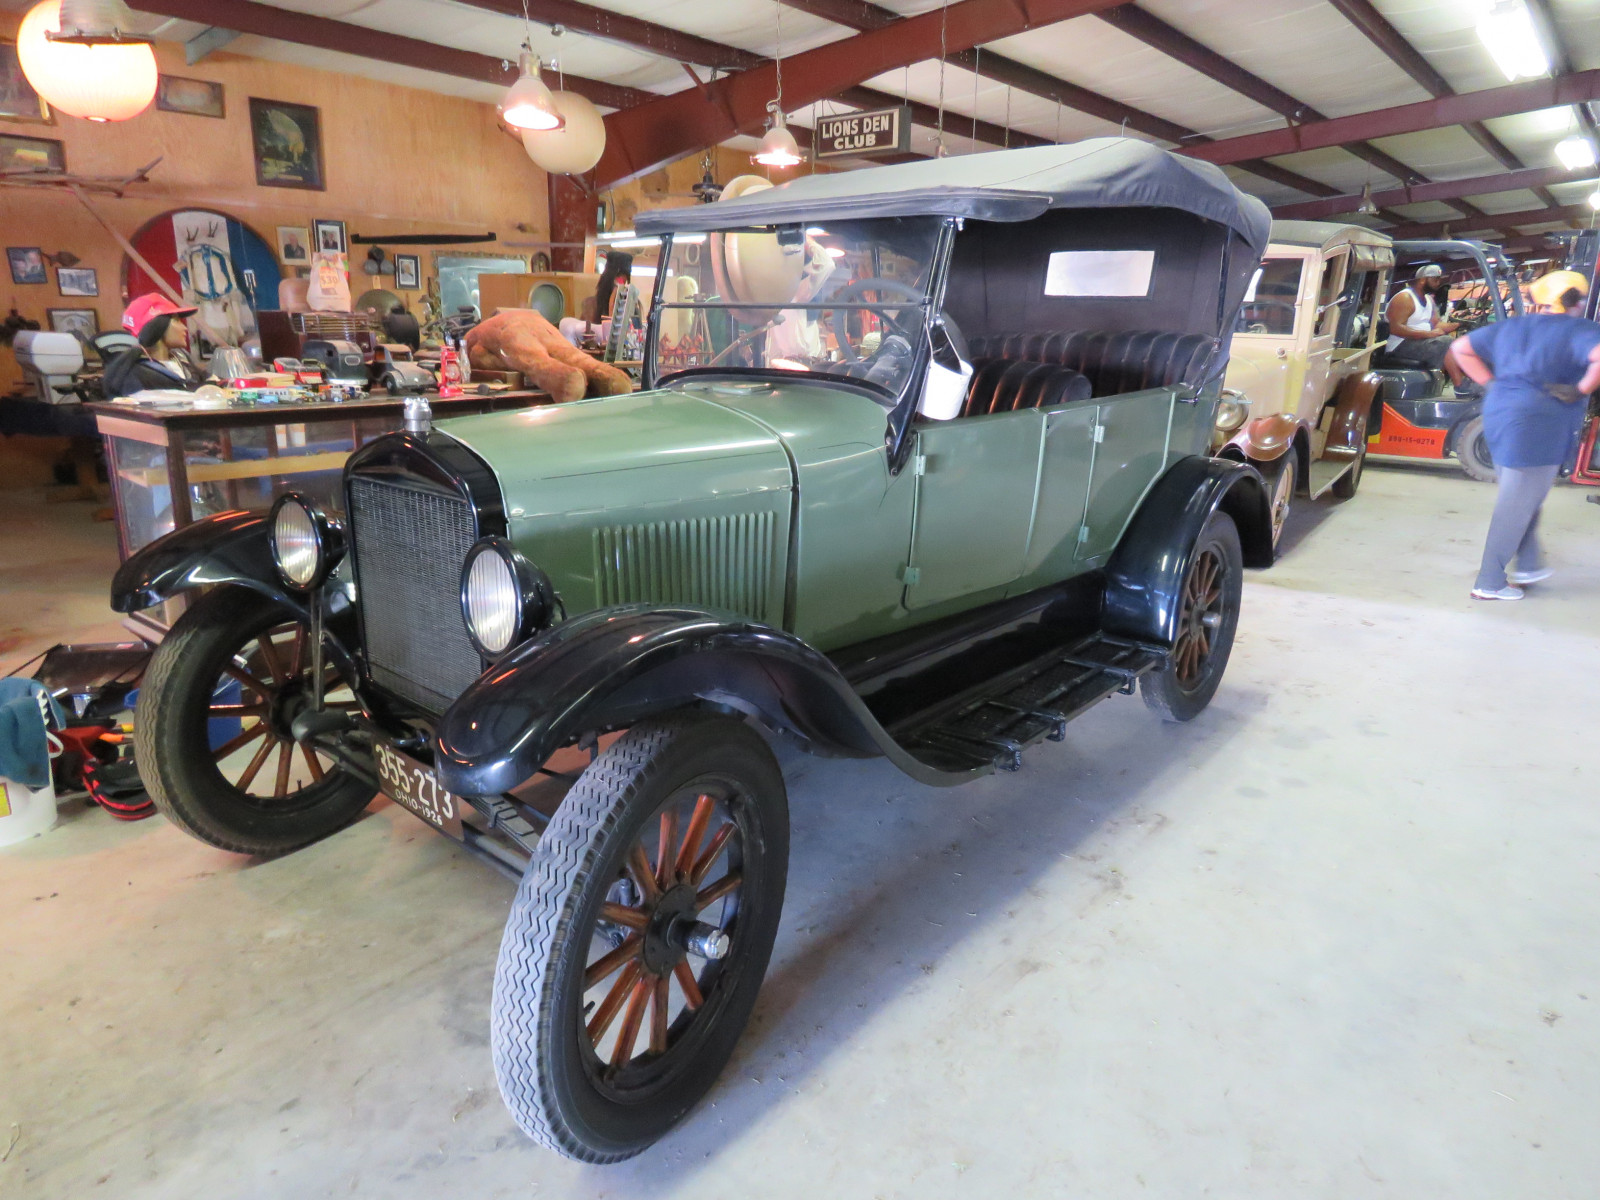 1926 Ford Model T Touring Car - Image 3